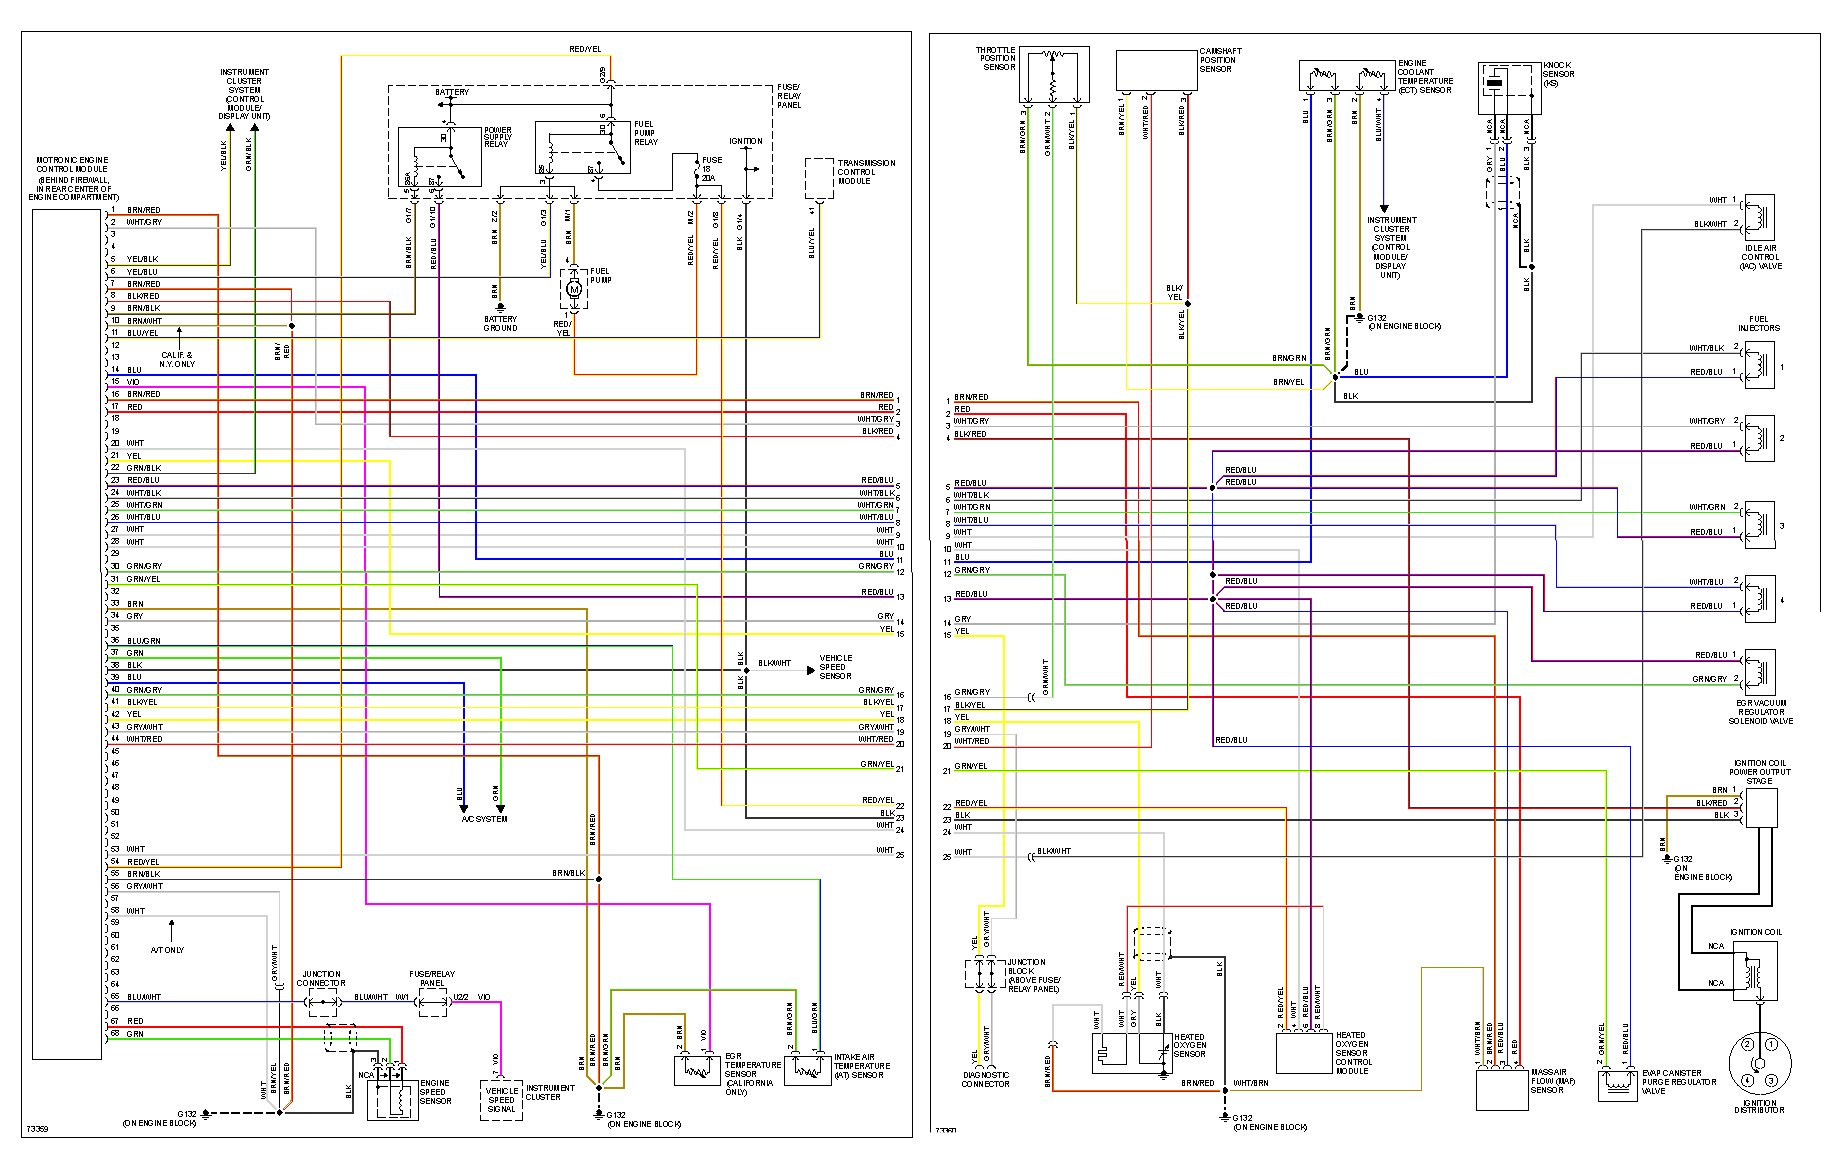 how to read vw wiring diagrams  | efcaviation.com